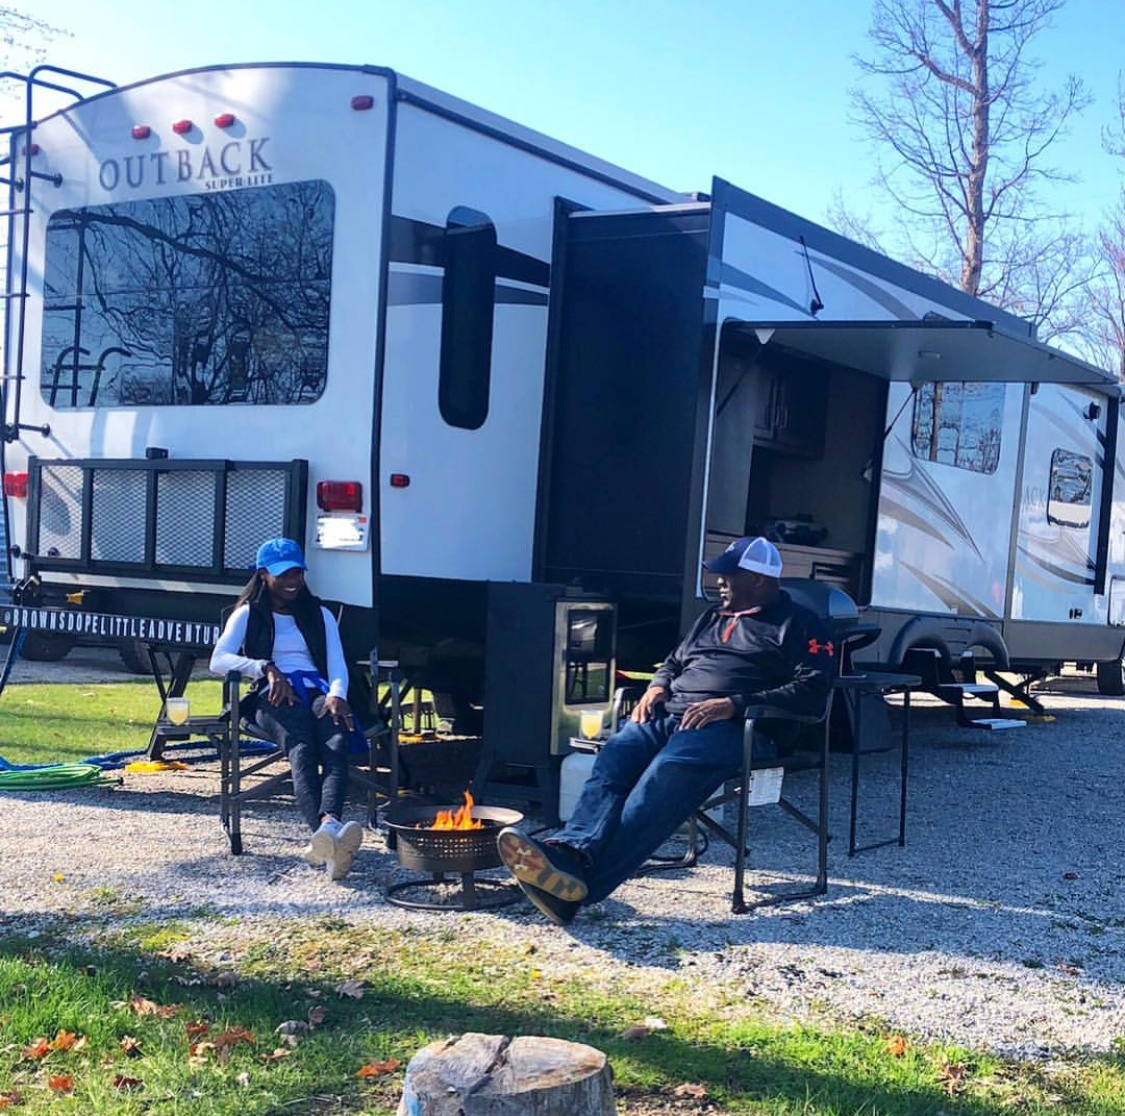 The Browns enjoy outdoor cooking, sitting by the fire pit and having fun with the local RV community